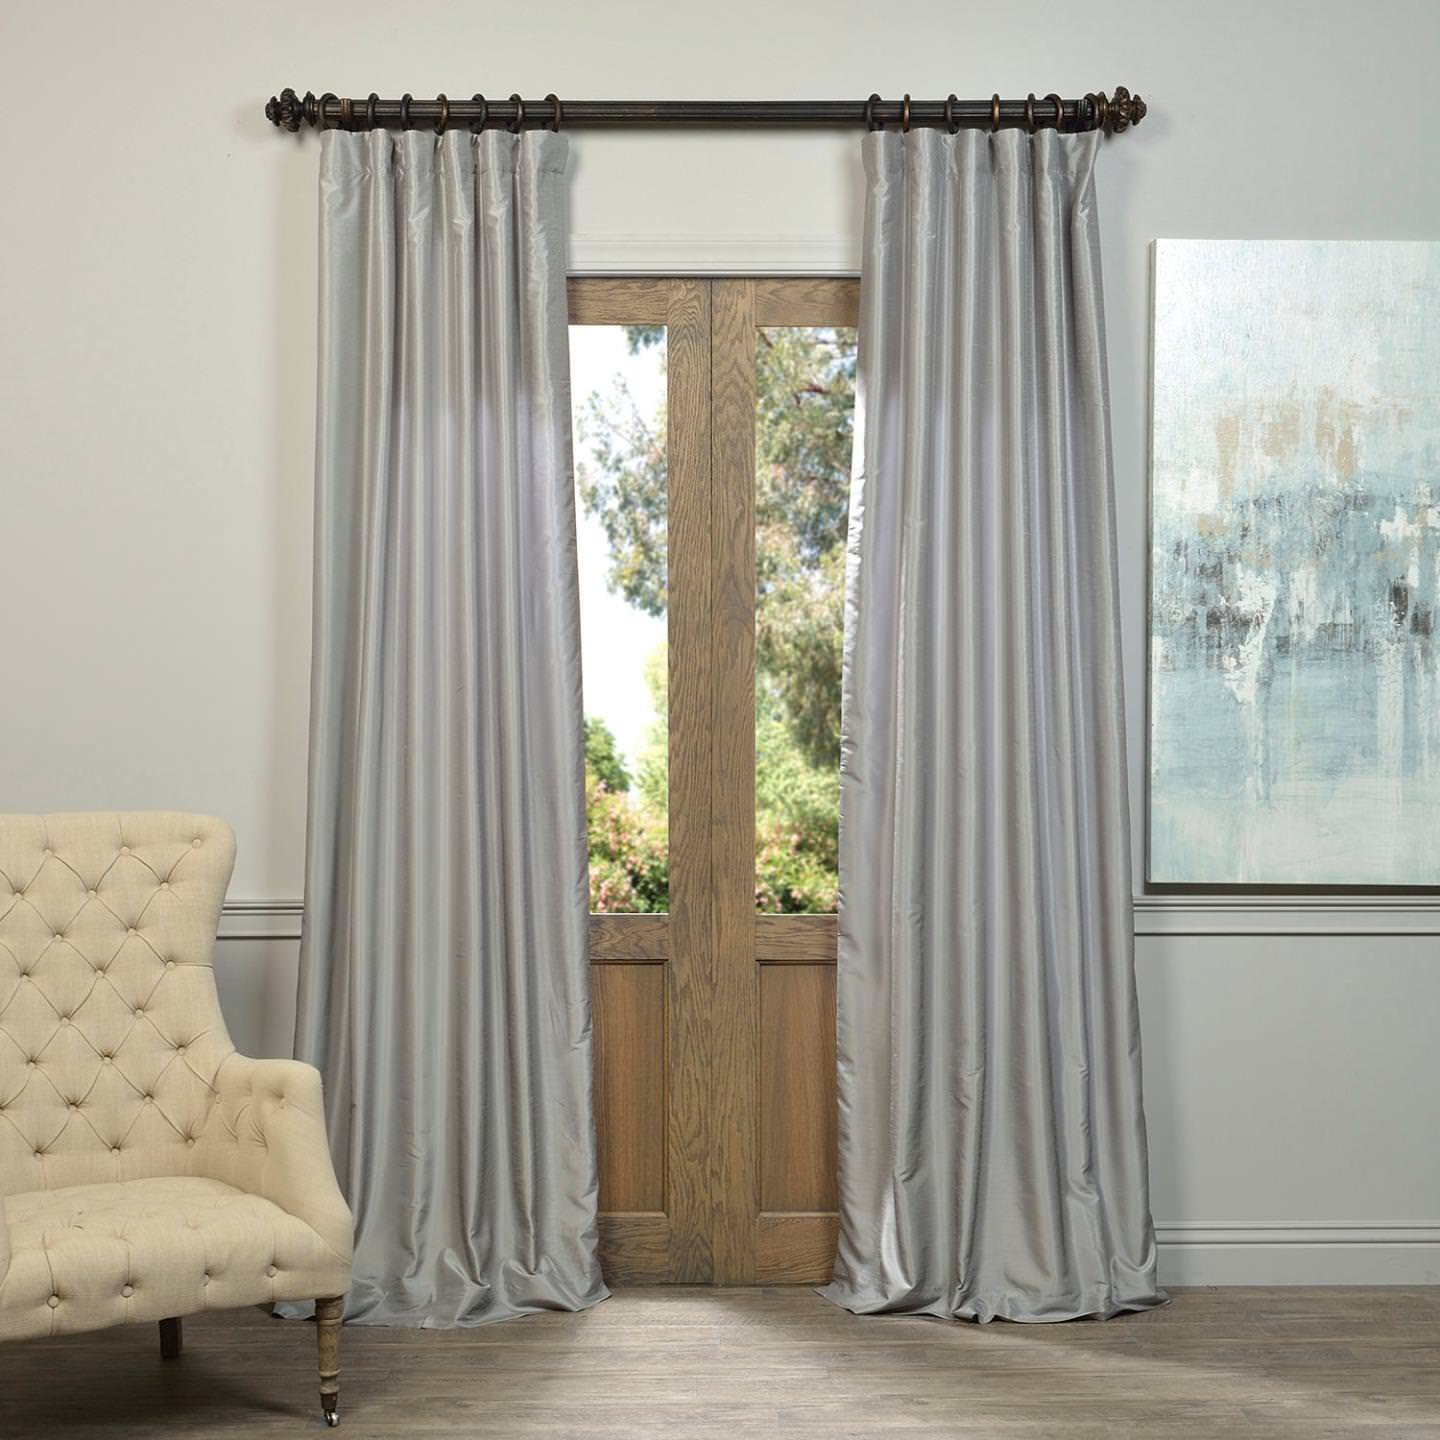 Half Price Drapes PDCH-KBS9-120 Vintage Textured Faux Dupioni Silk Curtain, Silver